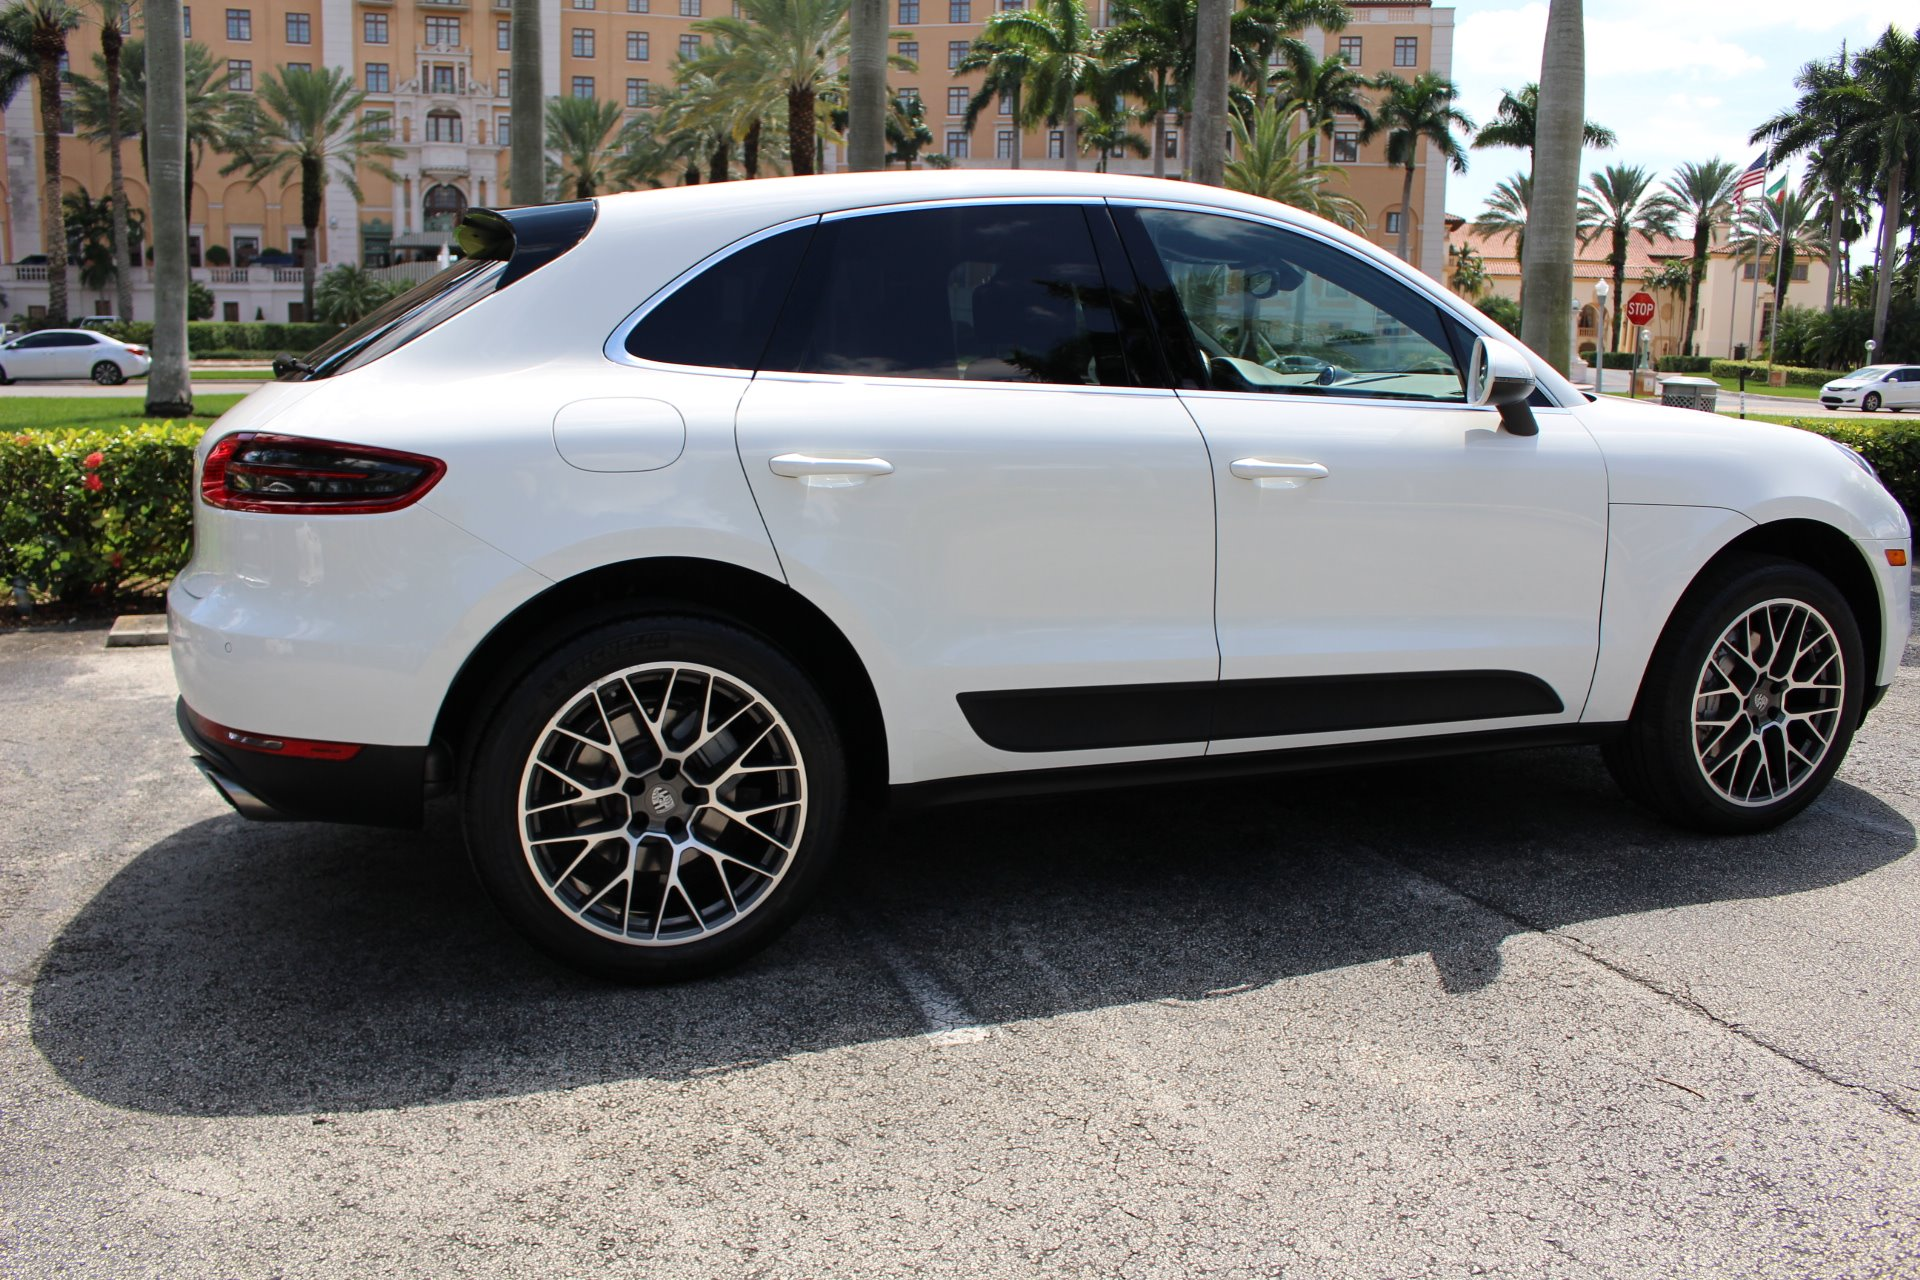 Used 2016 Porsche Macan S for sale Sold at The Gables Sports Cars in Miami FL 33146 4